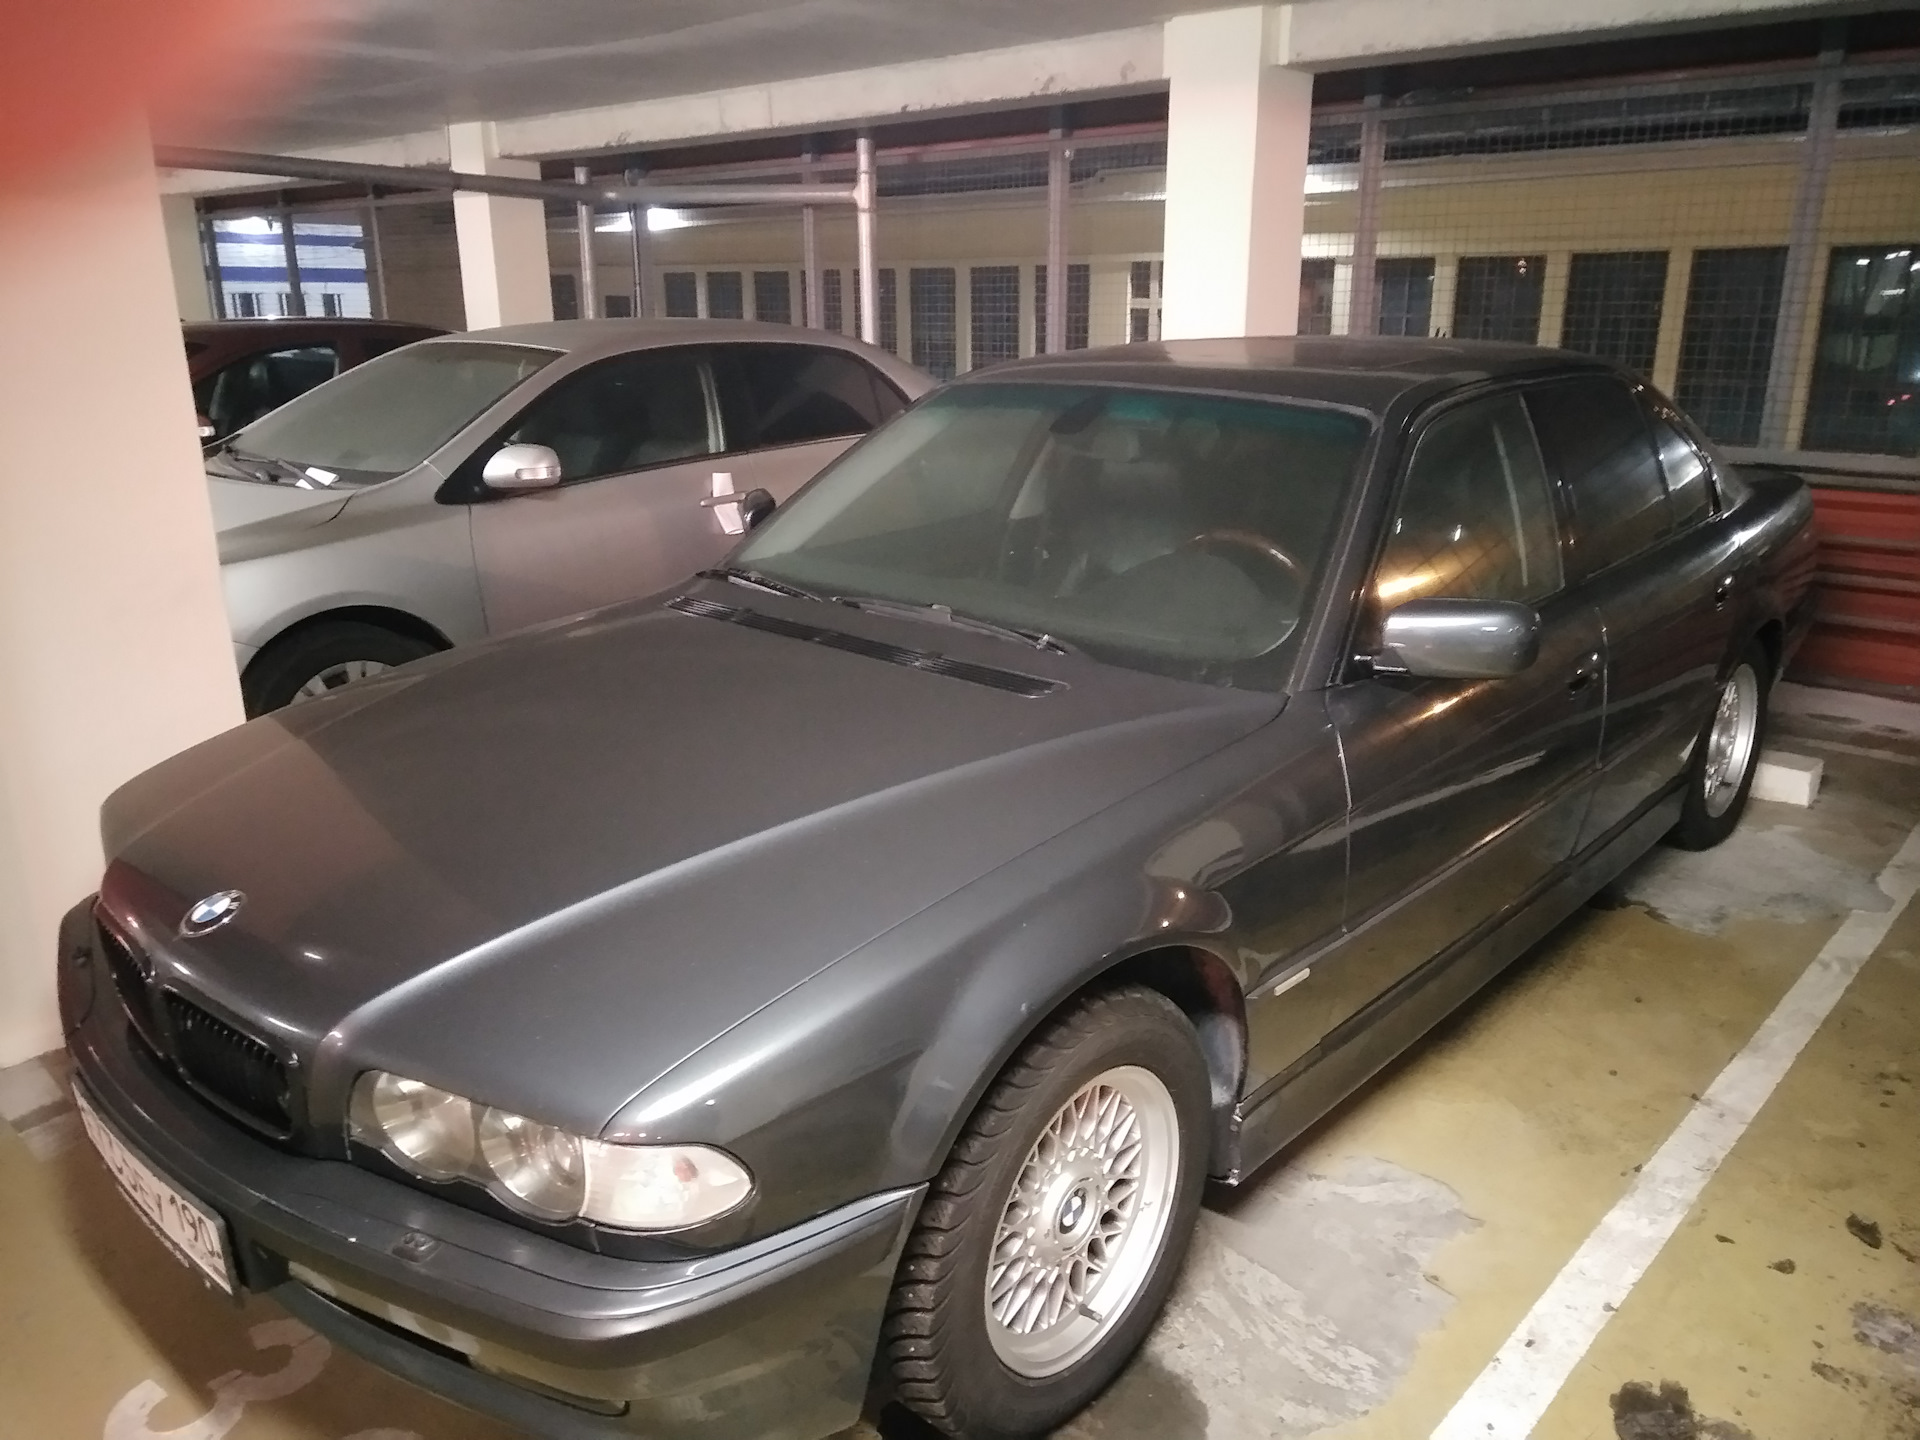 Anthrazit Metallic Bmw Зимовка бортжурнал Bmw 7 Series Anthrazit Metallic 1999 года на